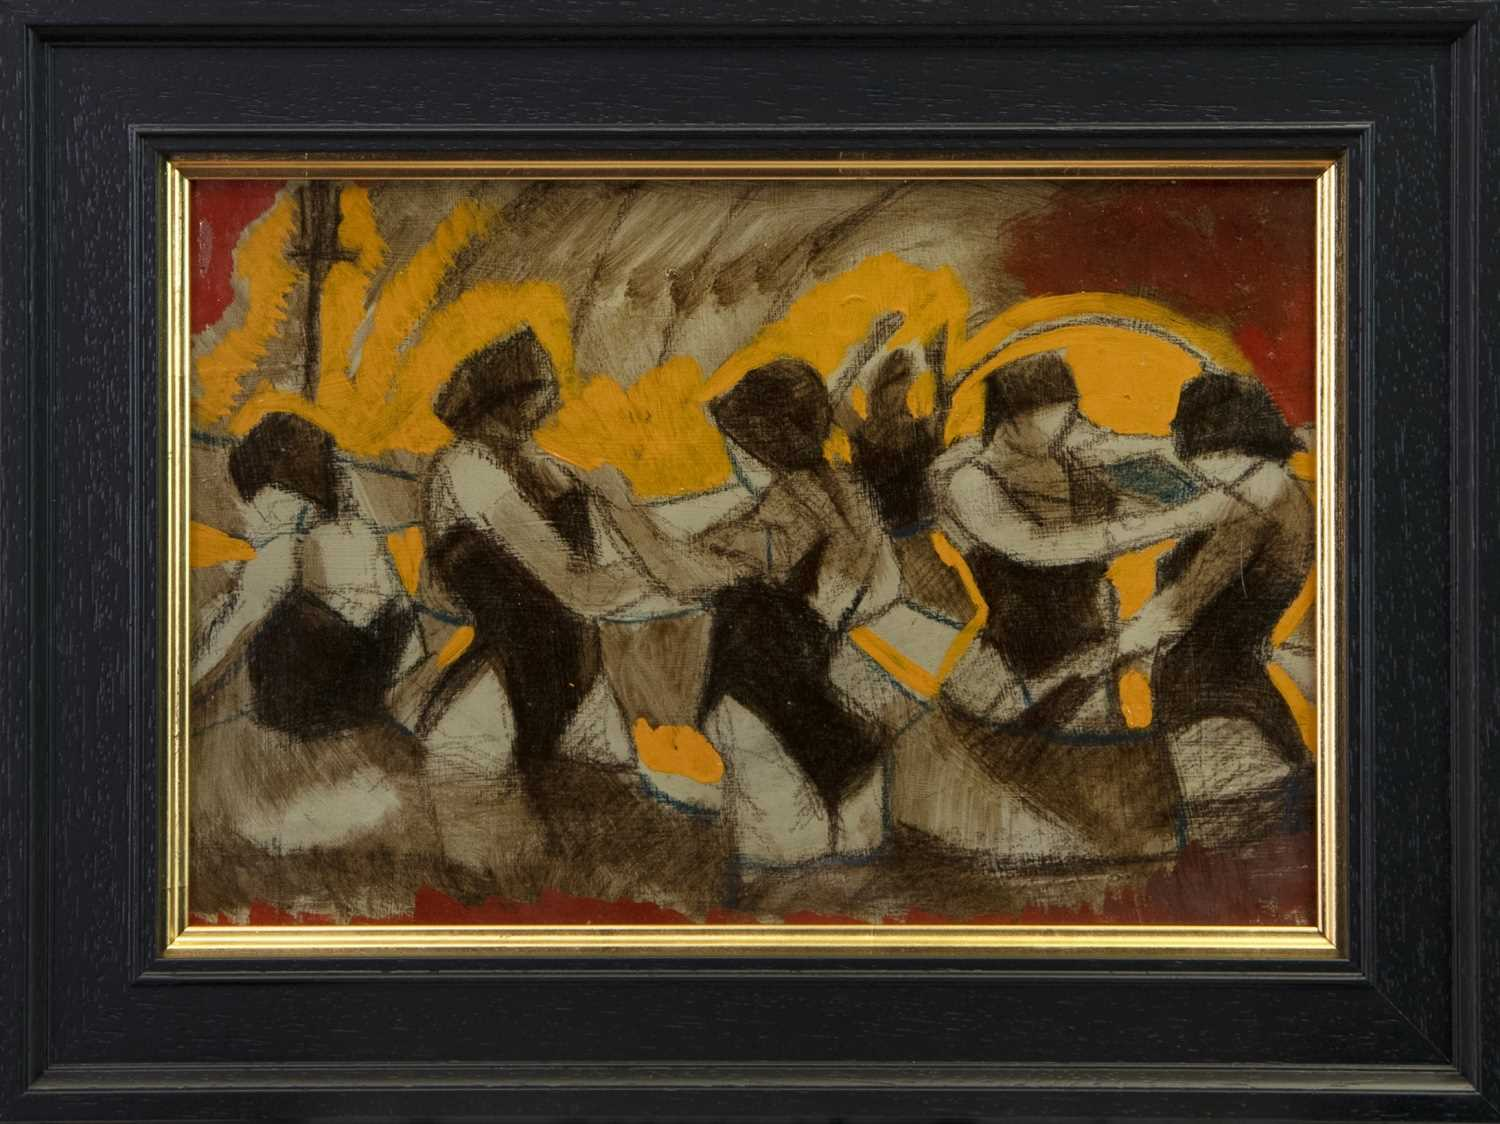 Lot 40 - SUNSET DANCERS, A MIXED MEDIA BY JAMIE O'DEA